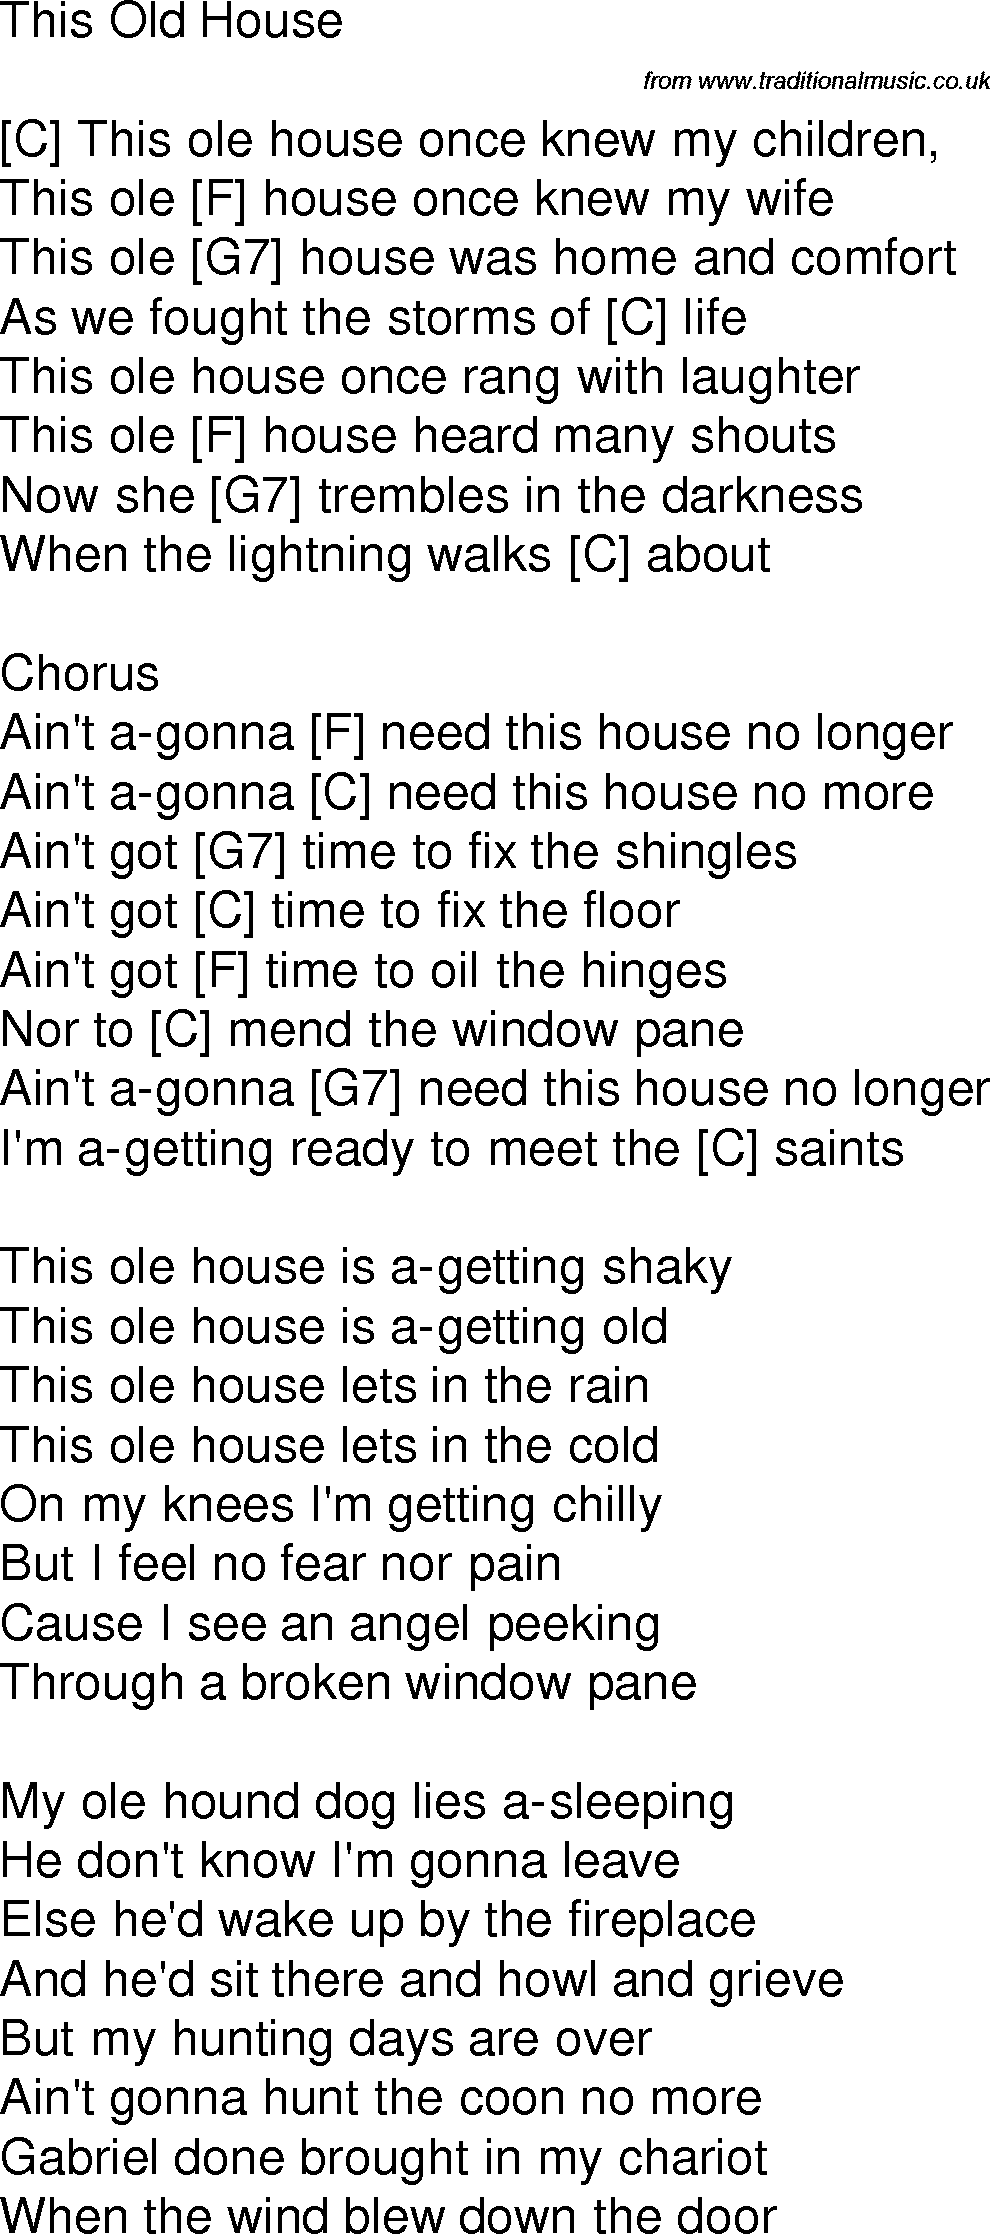 Old Time Song Lyrics With Chords For This House C